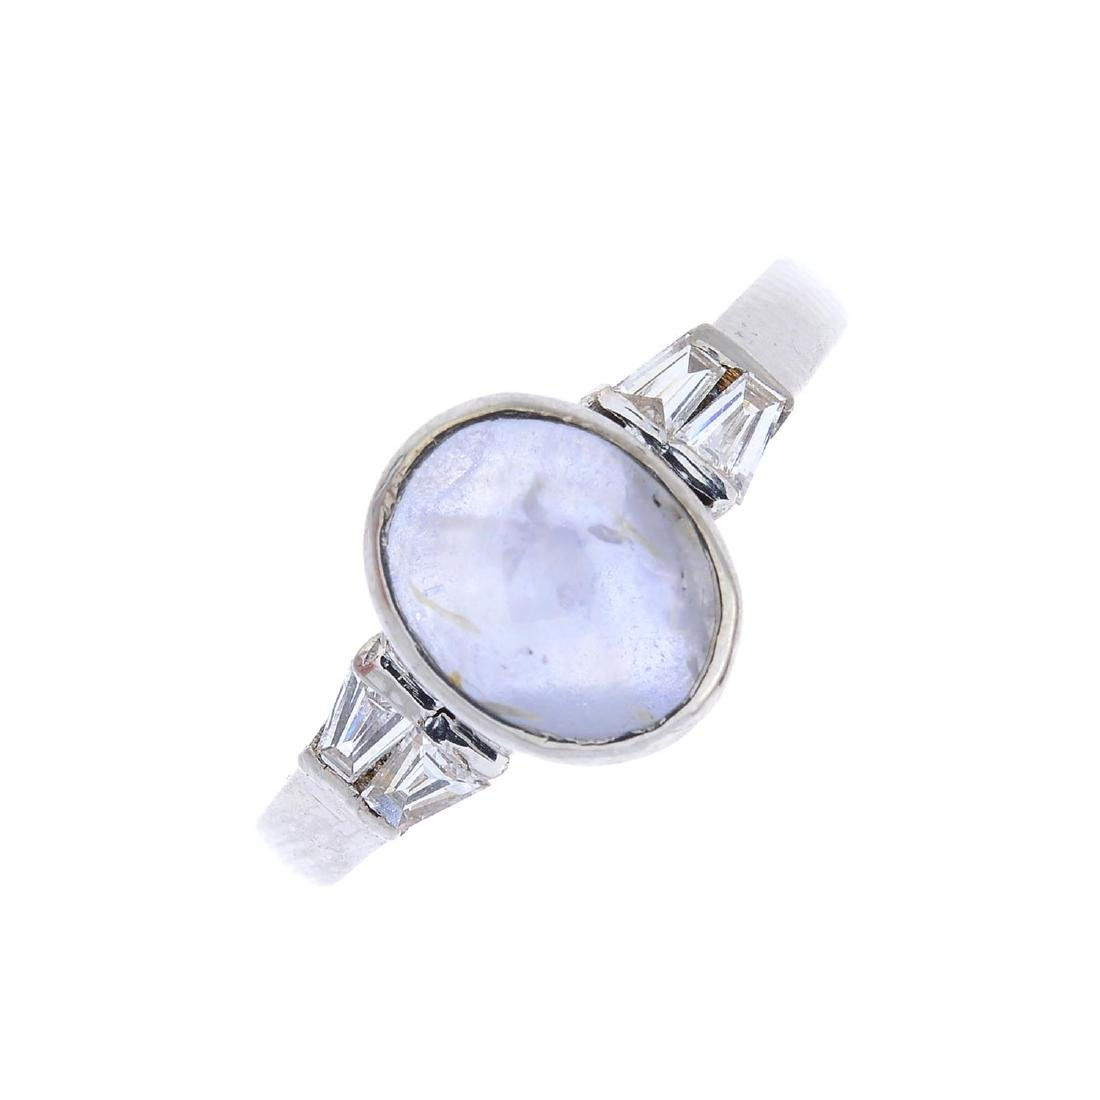 A star sapphire and diamond dress ring. The oval star